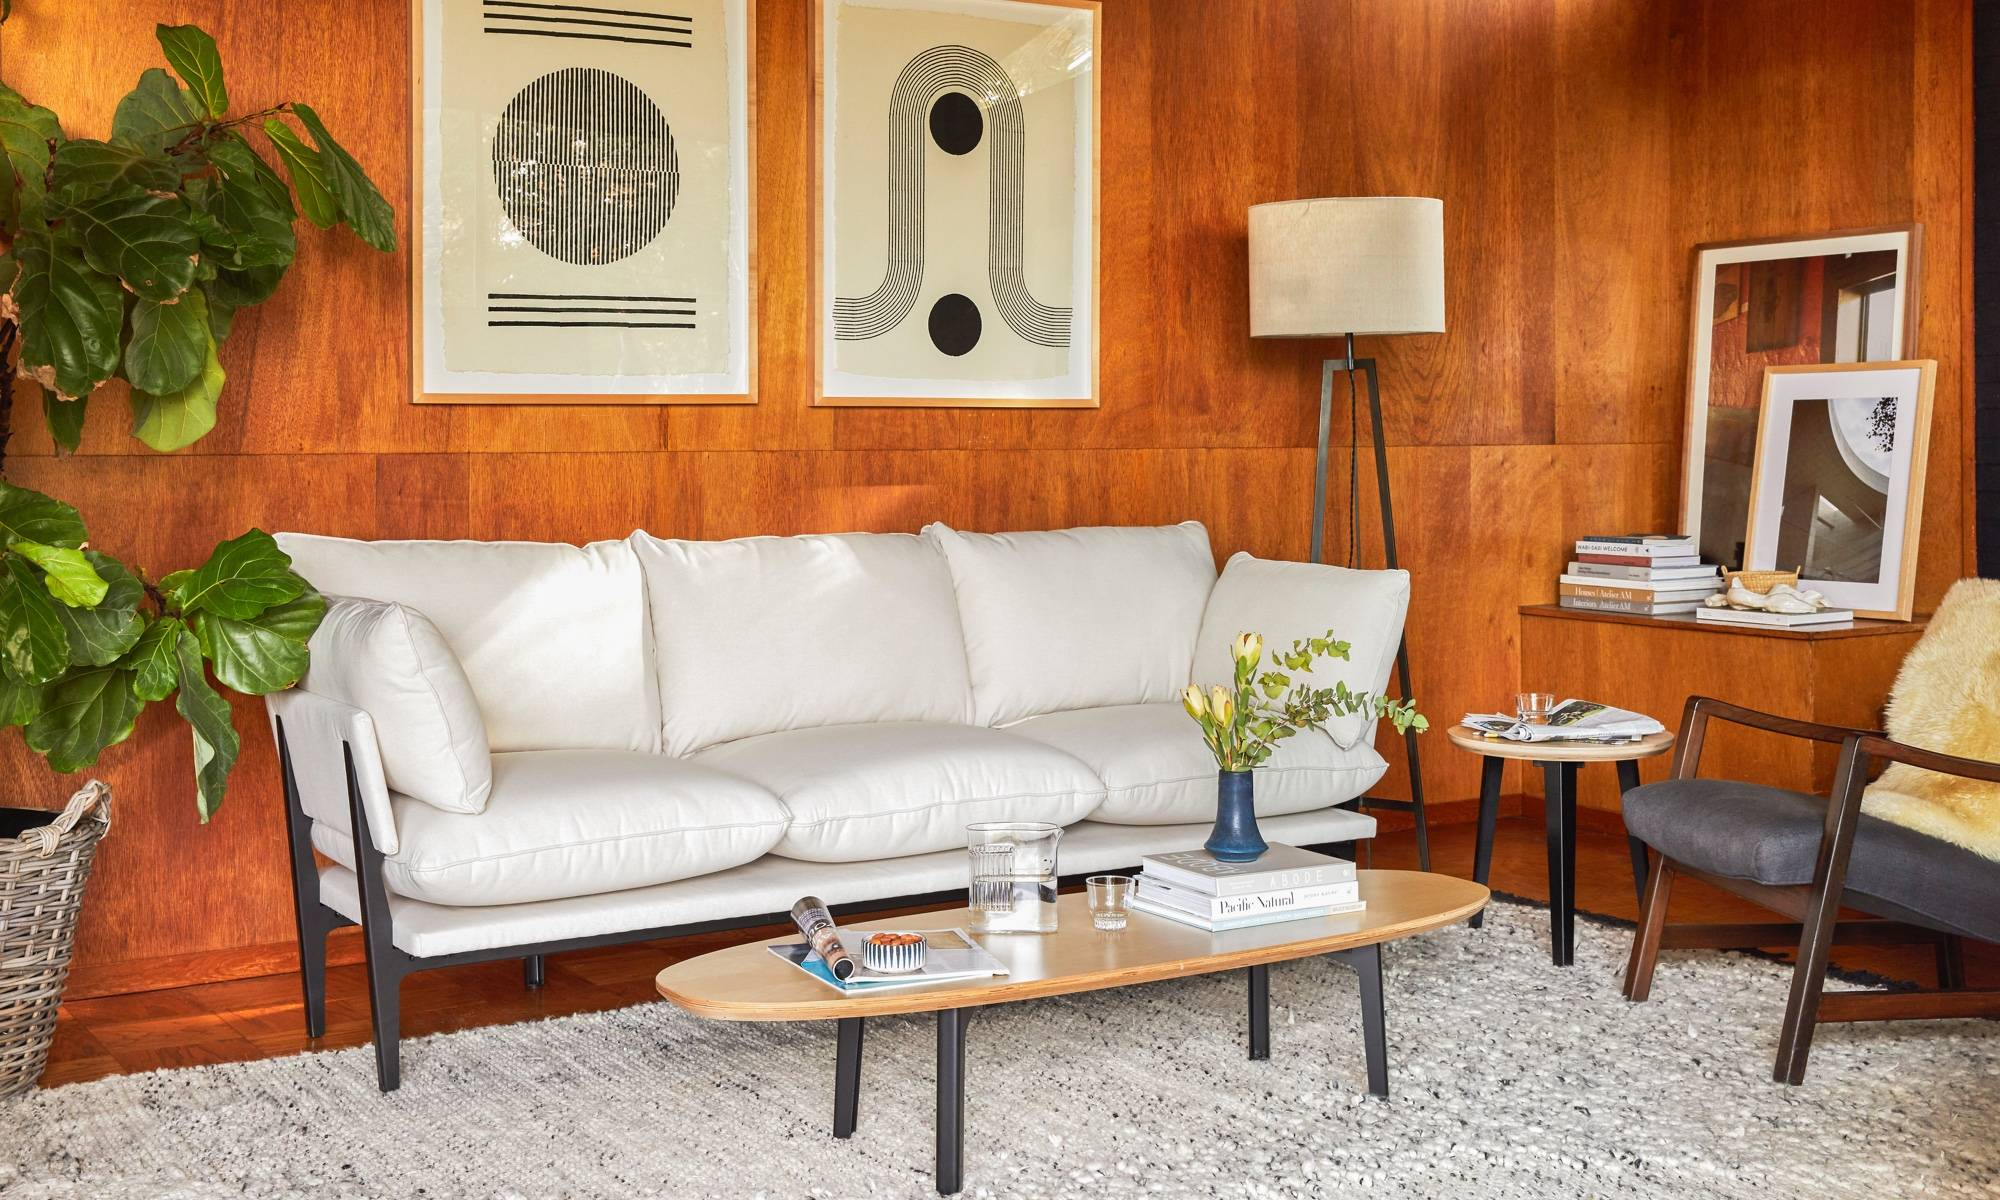 White Floyd sofa in Oat in front of a beautiful walnut paneled wall and blockshop print art.